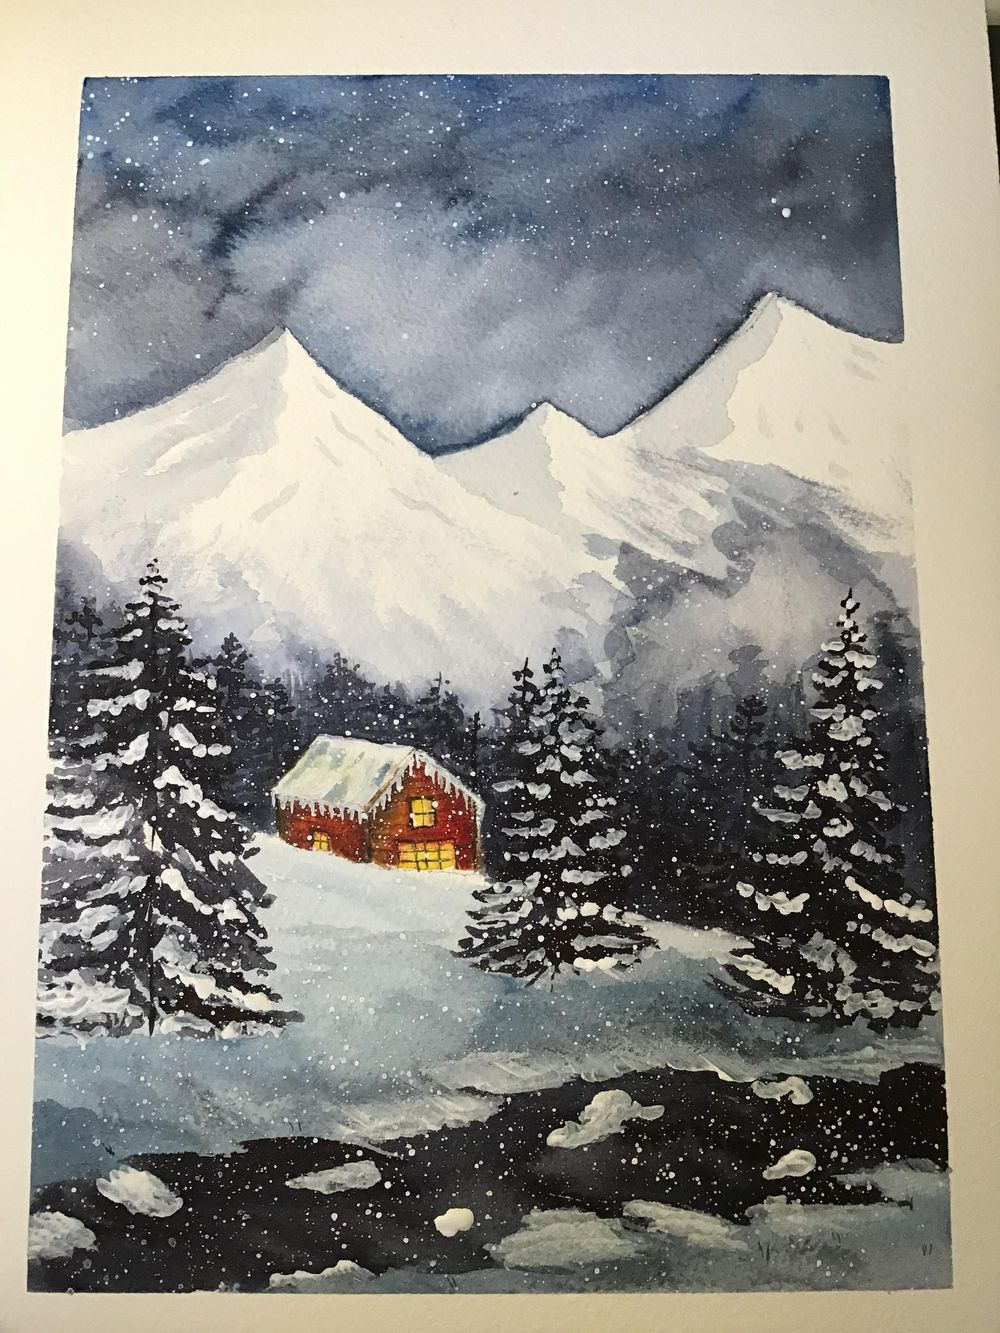 My snowy cabin - image 1 - student project